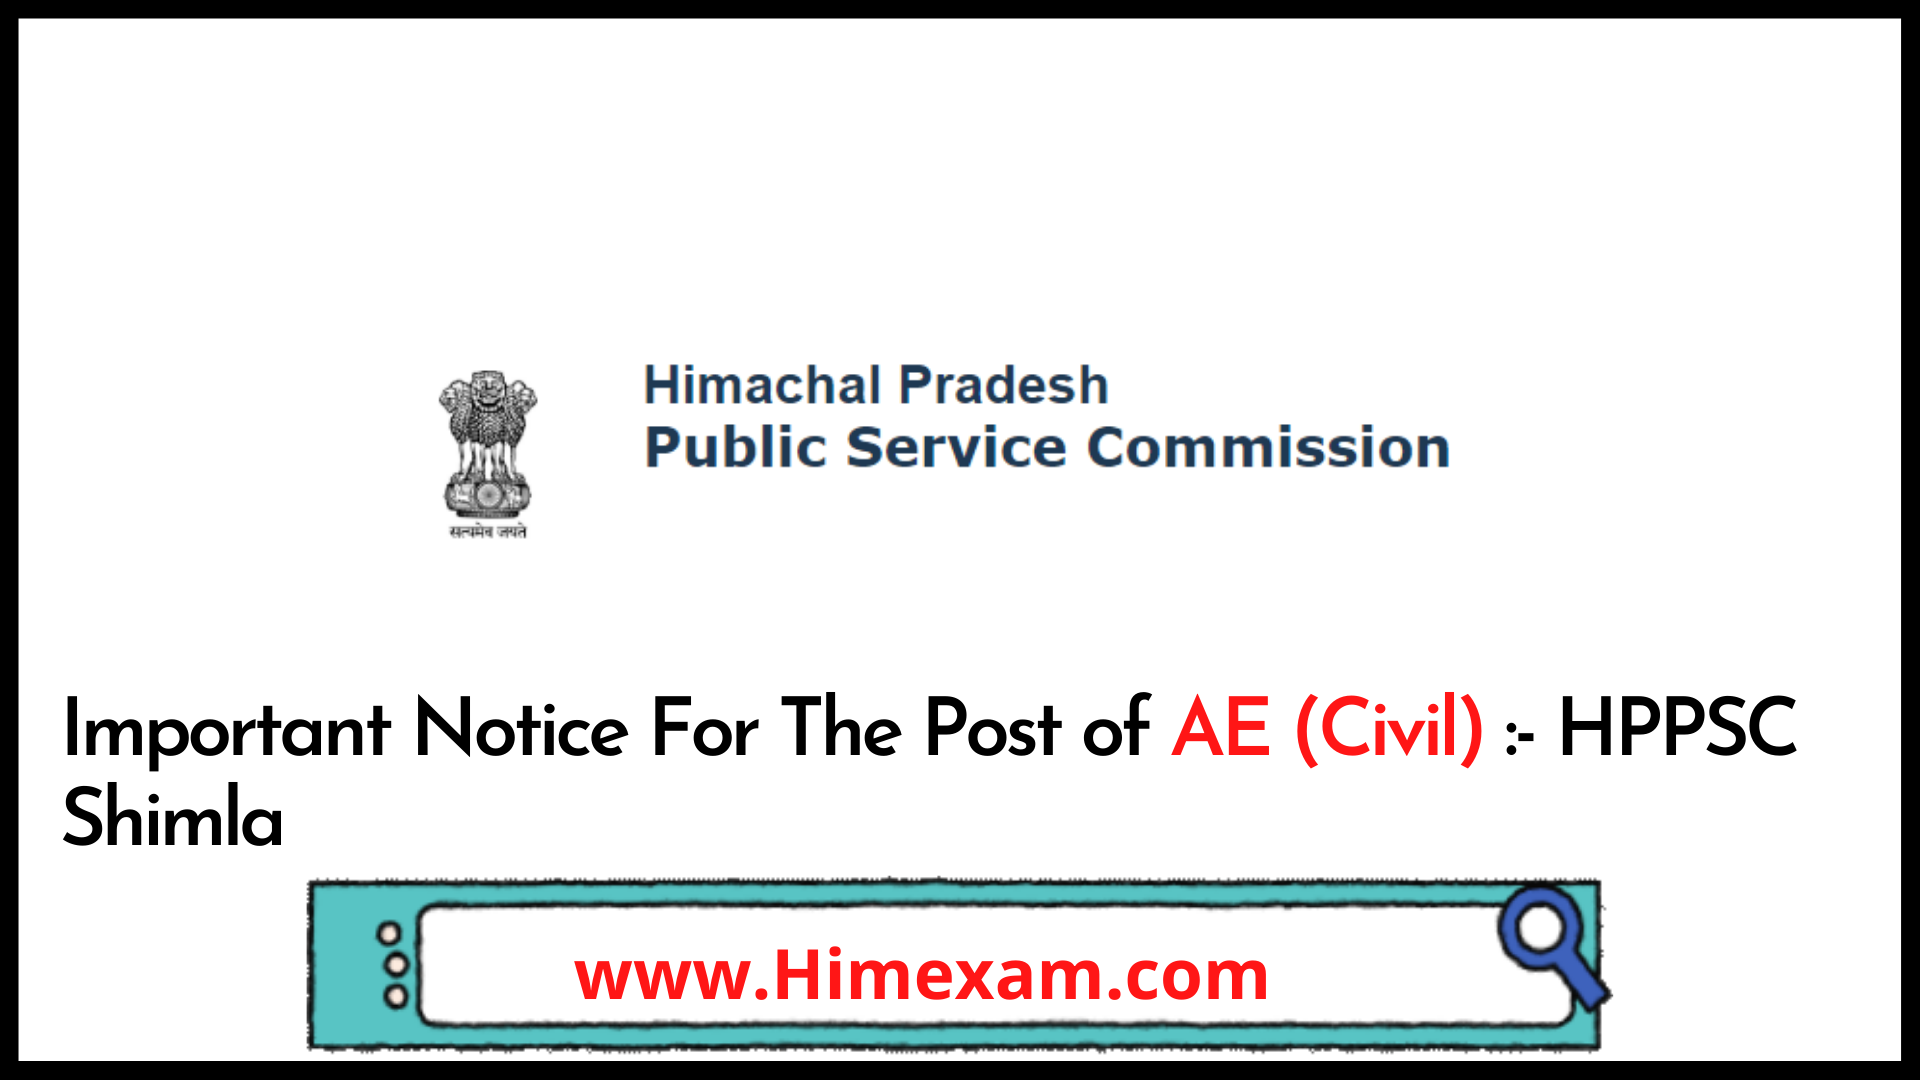 Important Notice For The Post of AE (Civil) :- HPPSC Shimla